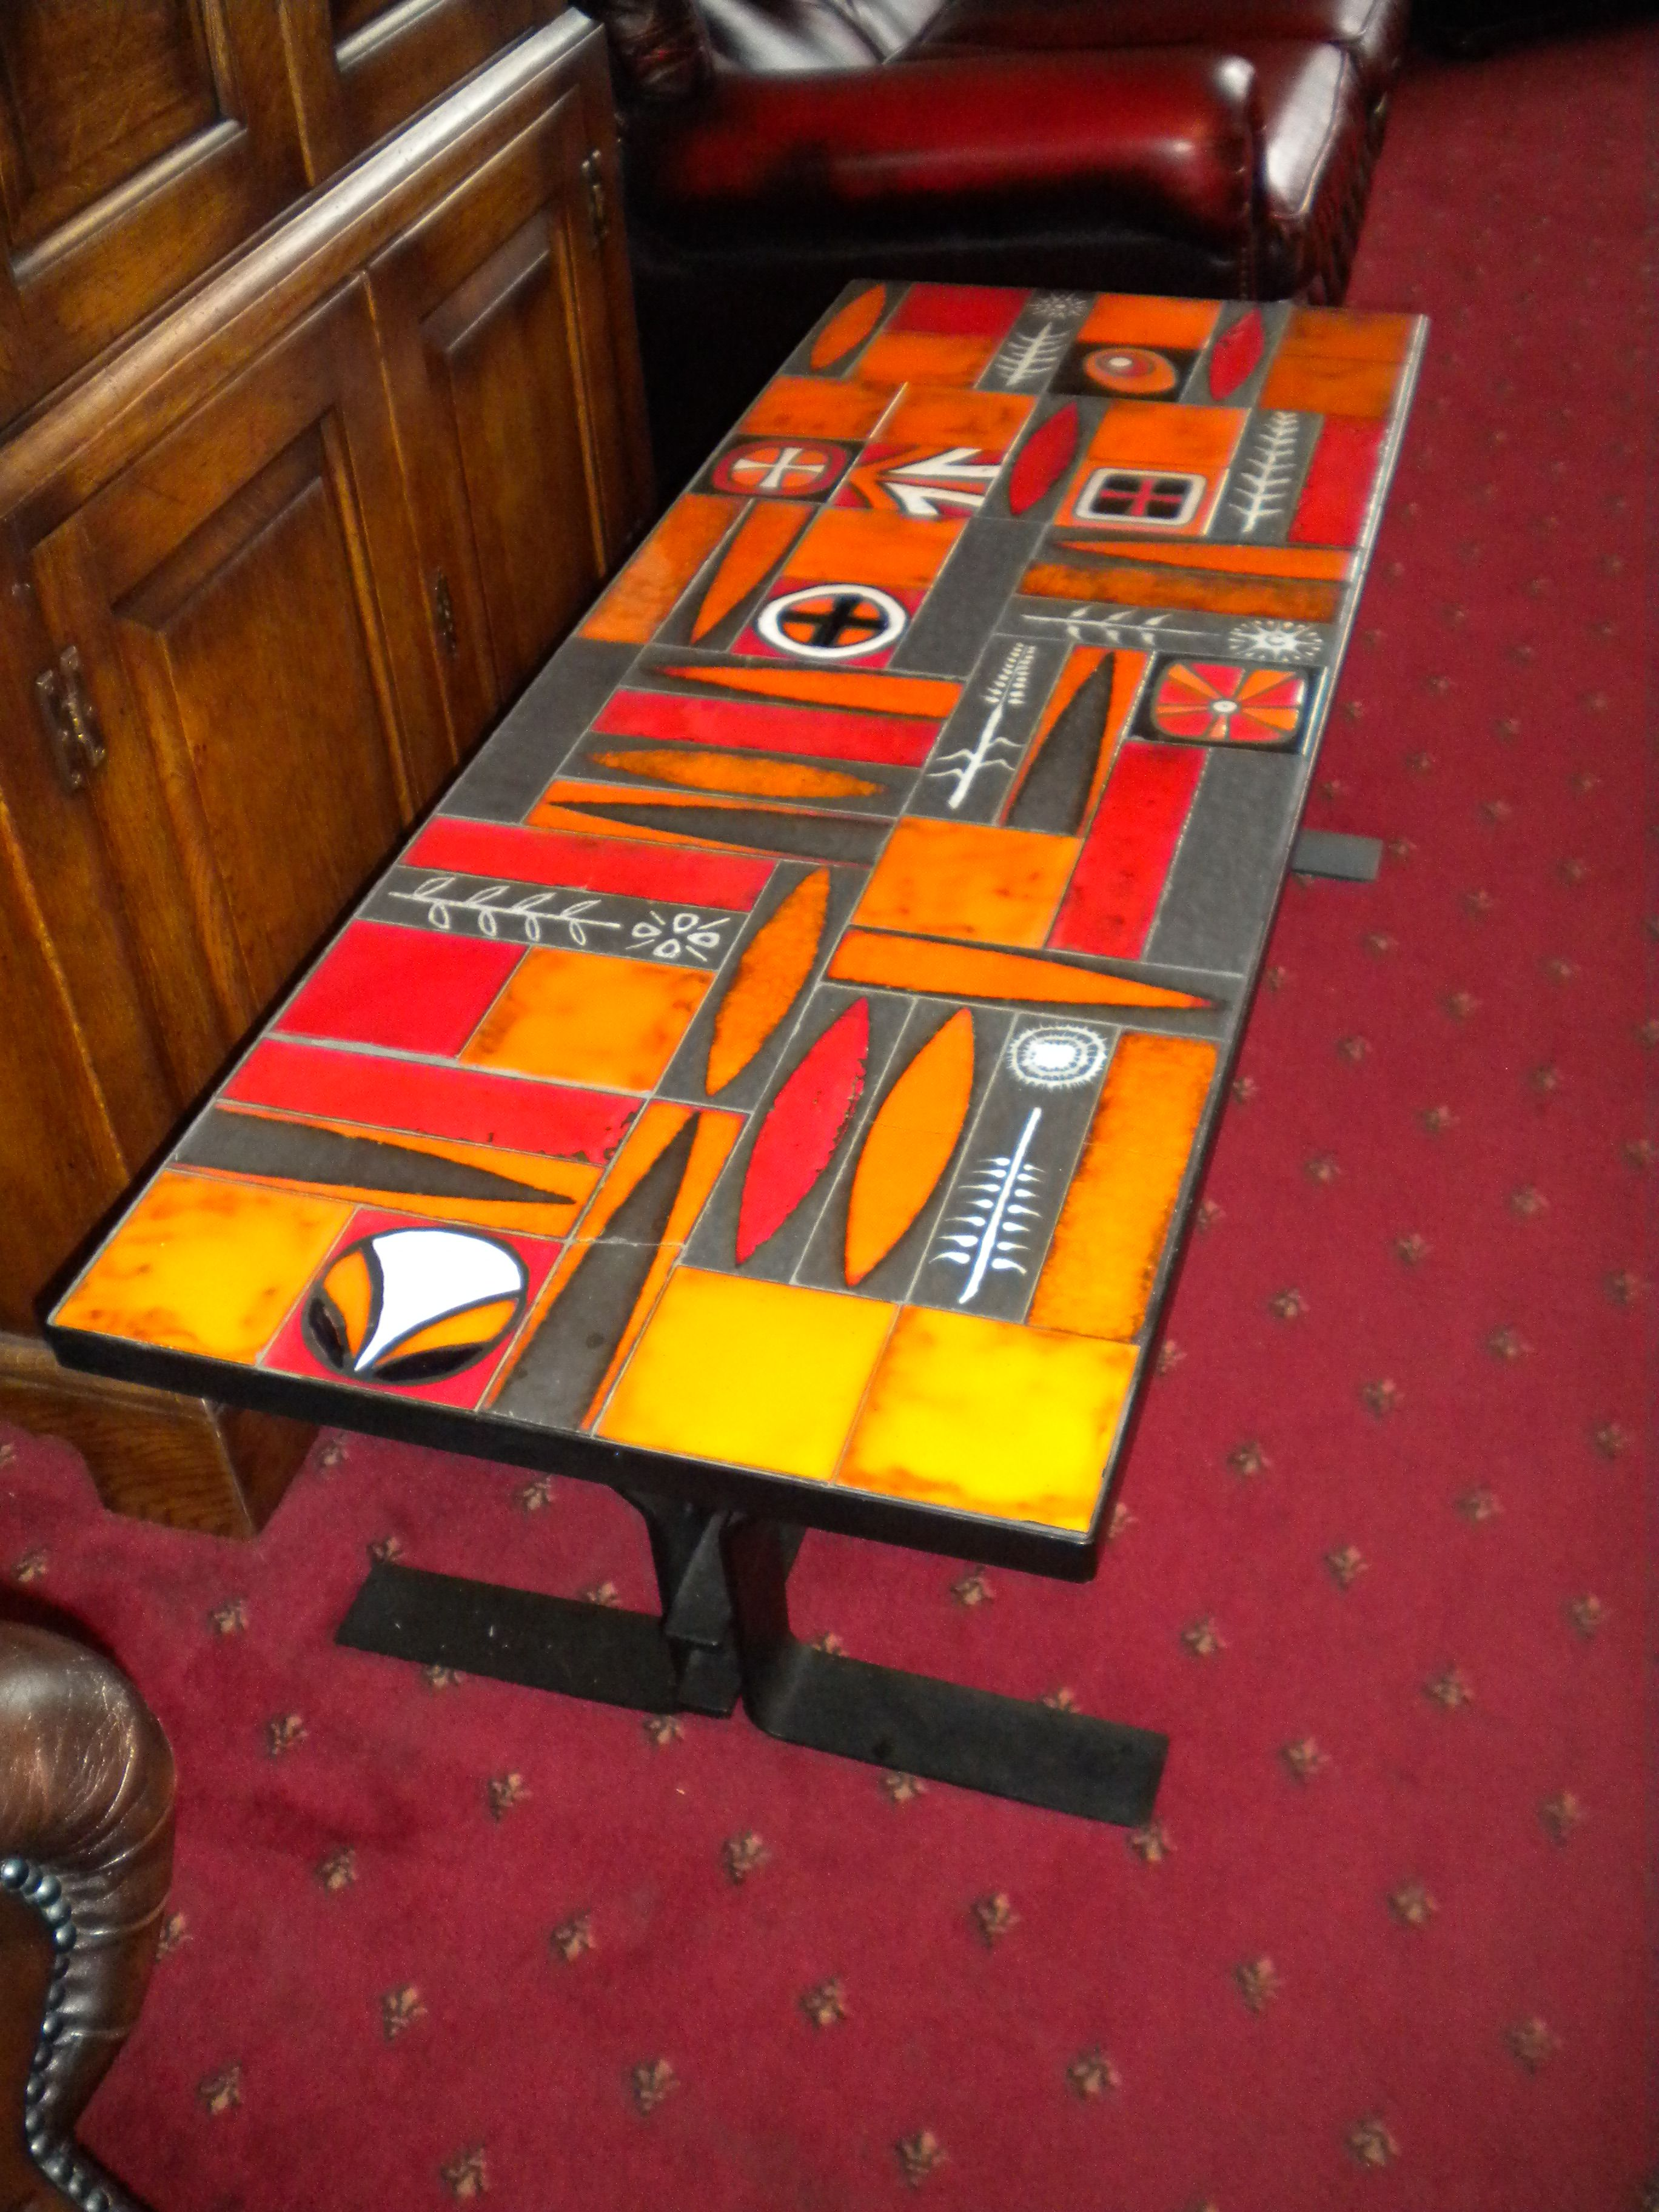 Vintageretro tiled coffee table those were the days pinterest vintageretro tiled coffee table geotapseo Choice Image